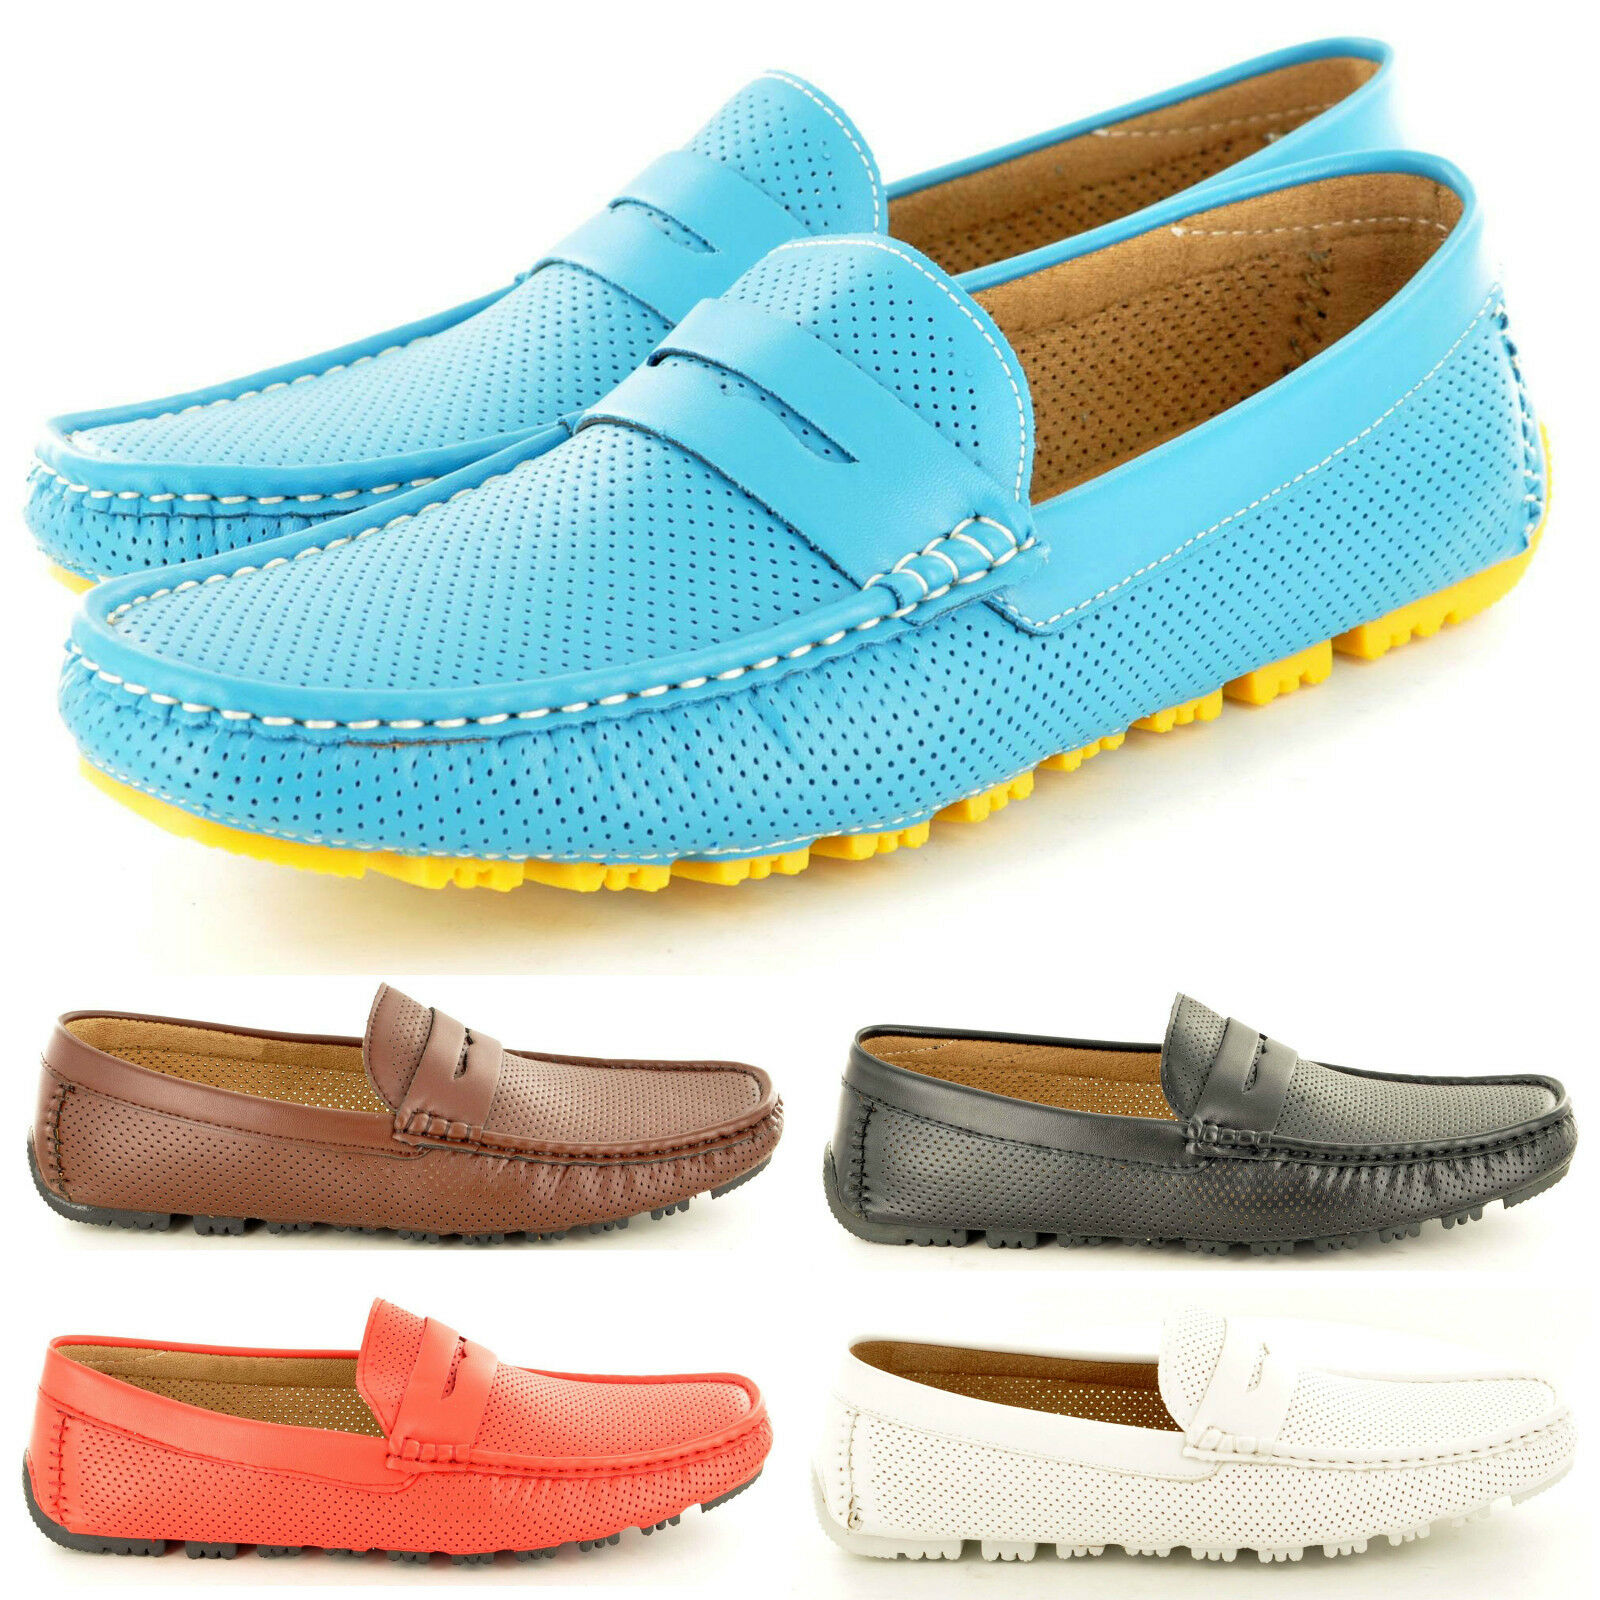 New Mens Soft Loafers & Comfy Casual Penny Loafers Soft Moccasins Slip on Shoes UK Sizes 6-11 f67f55